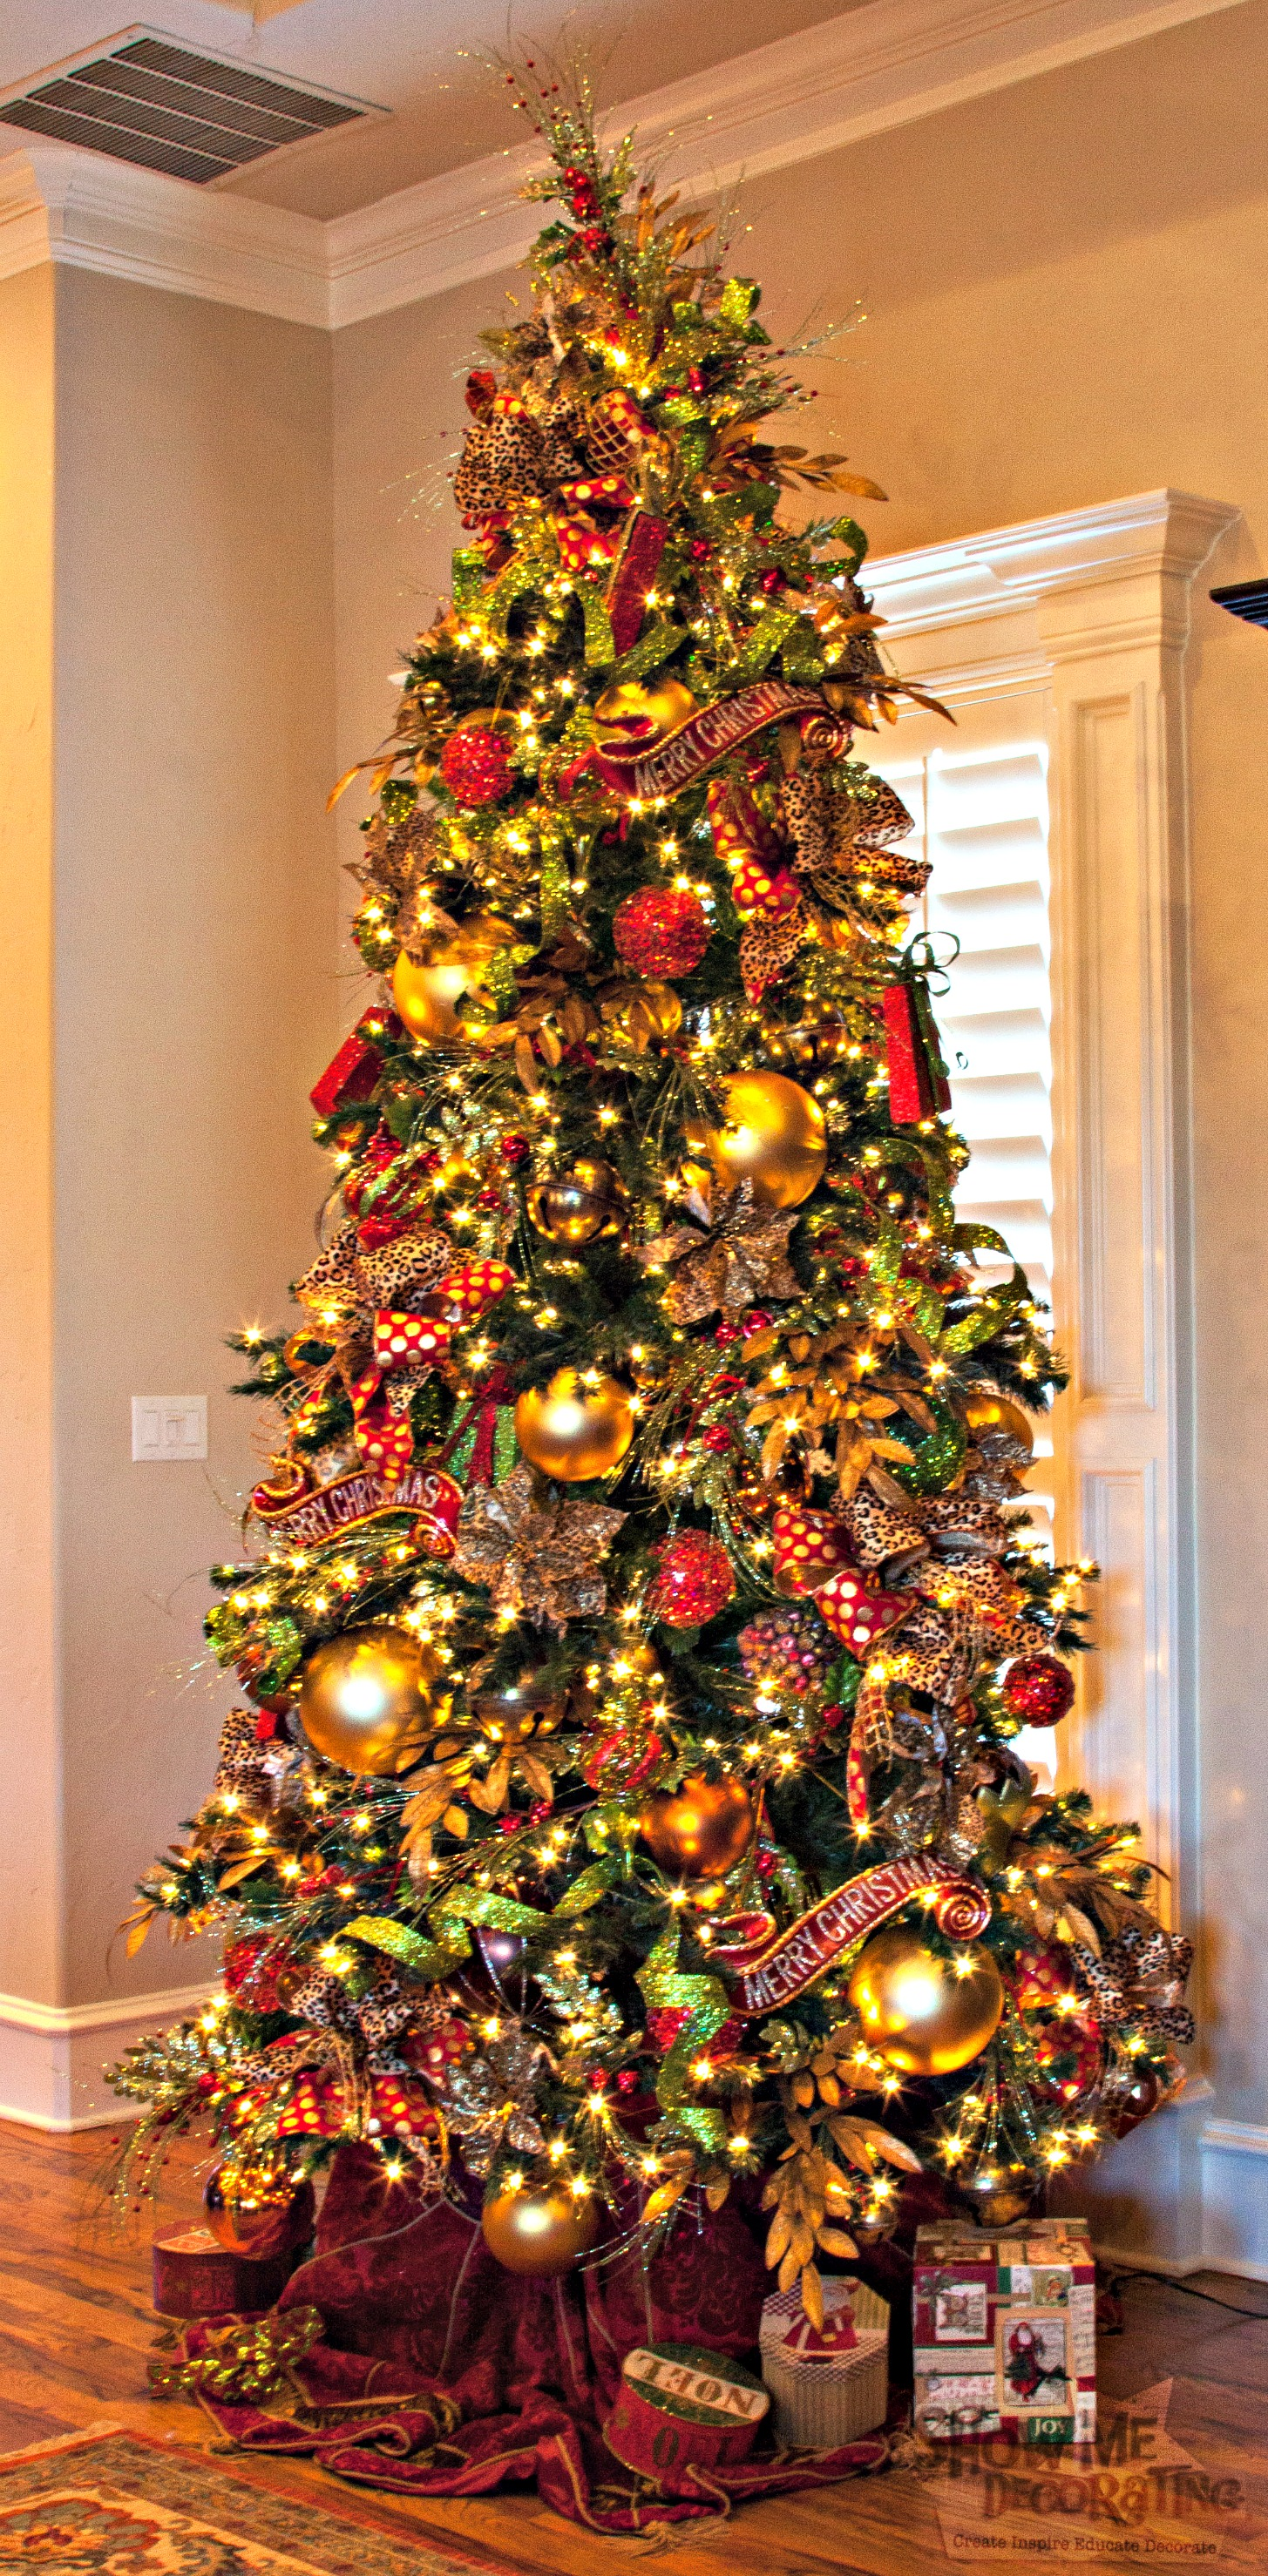 Christmas Decorations In Sale. Golf Cart Christmas Decorations Ideas on decorate a 4 wheeler, halloween decorating ideas golf cart, decorate a wheelchair, decorate a shopping cart,